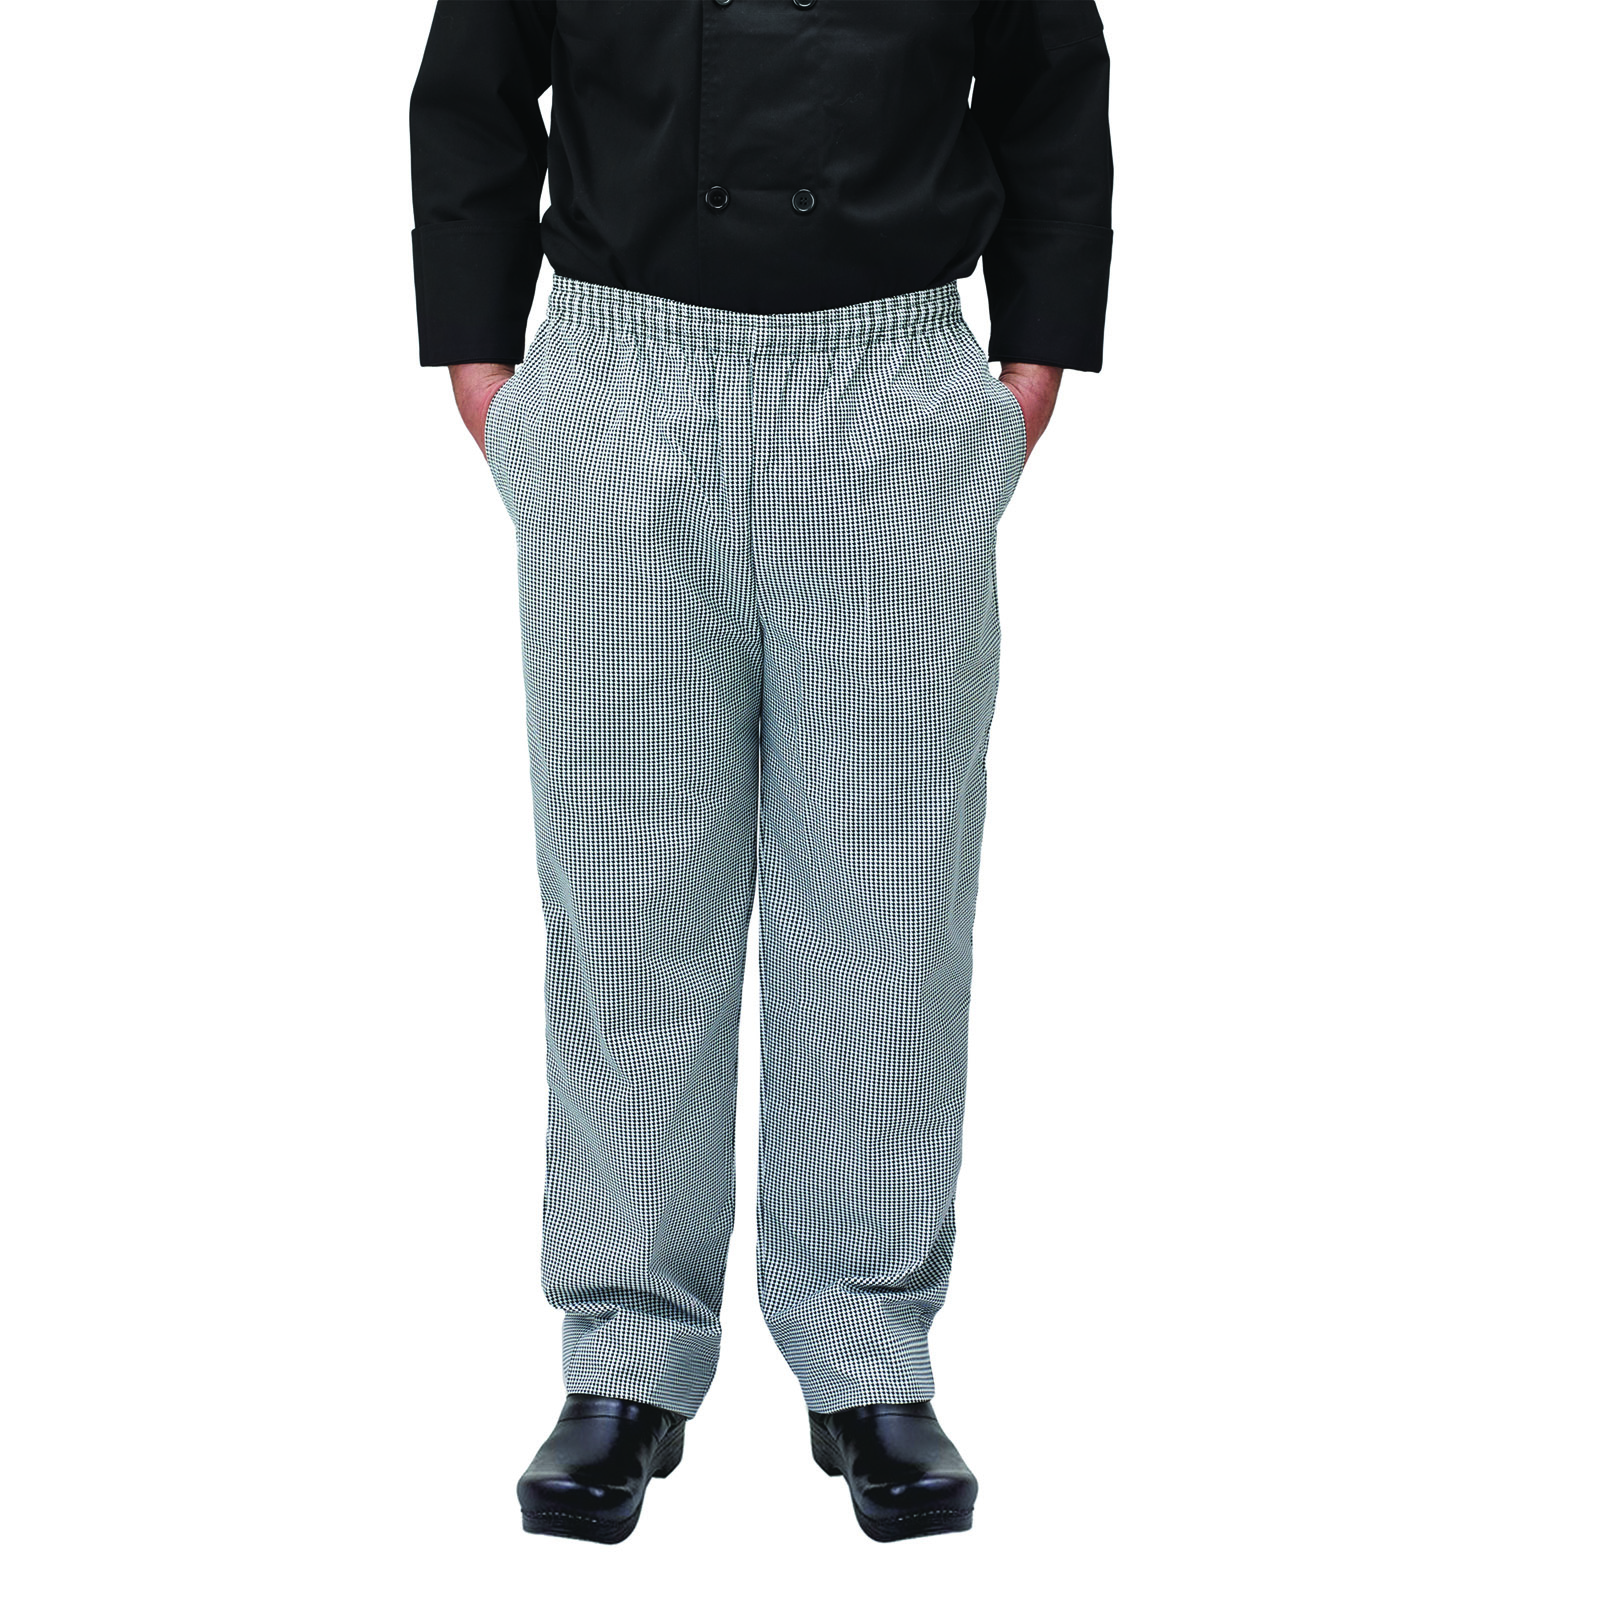 Winco UNF-4KXXL chef's pants